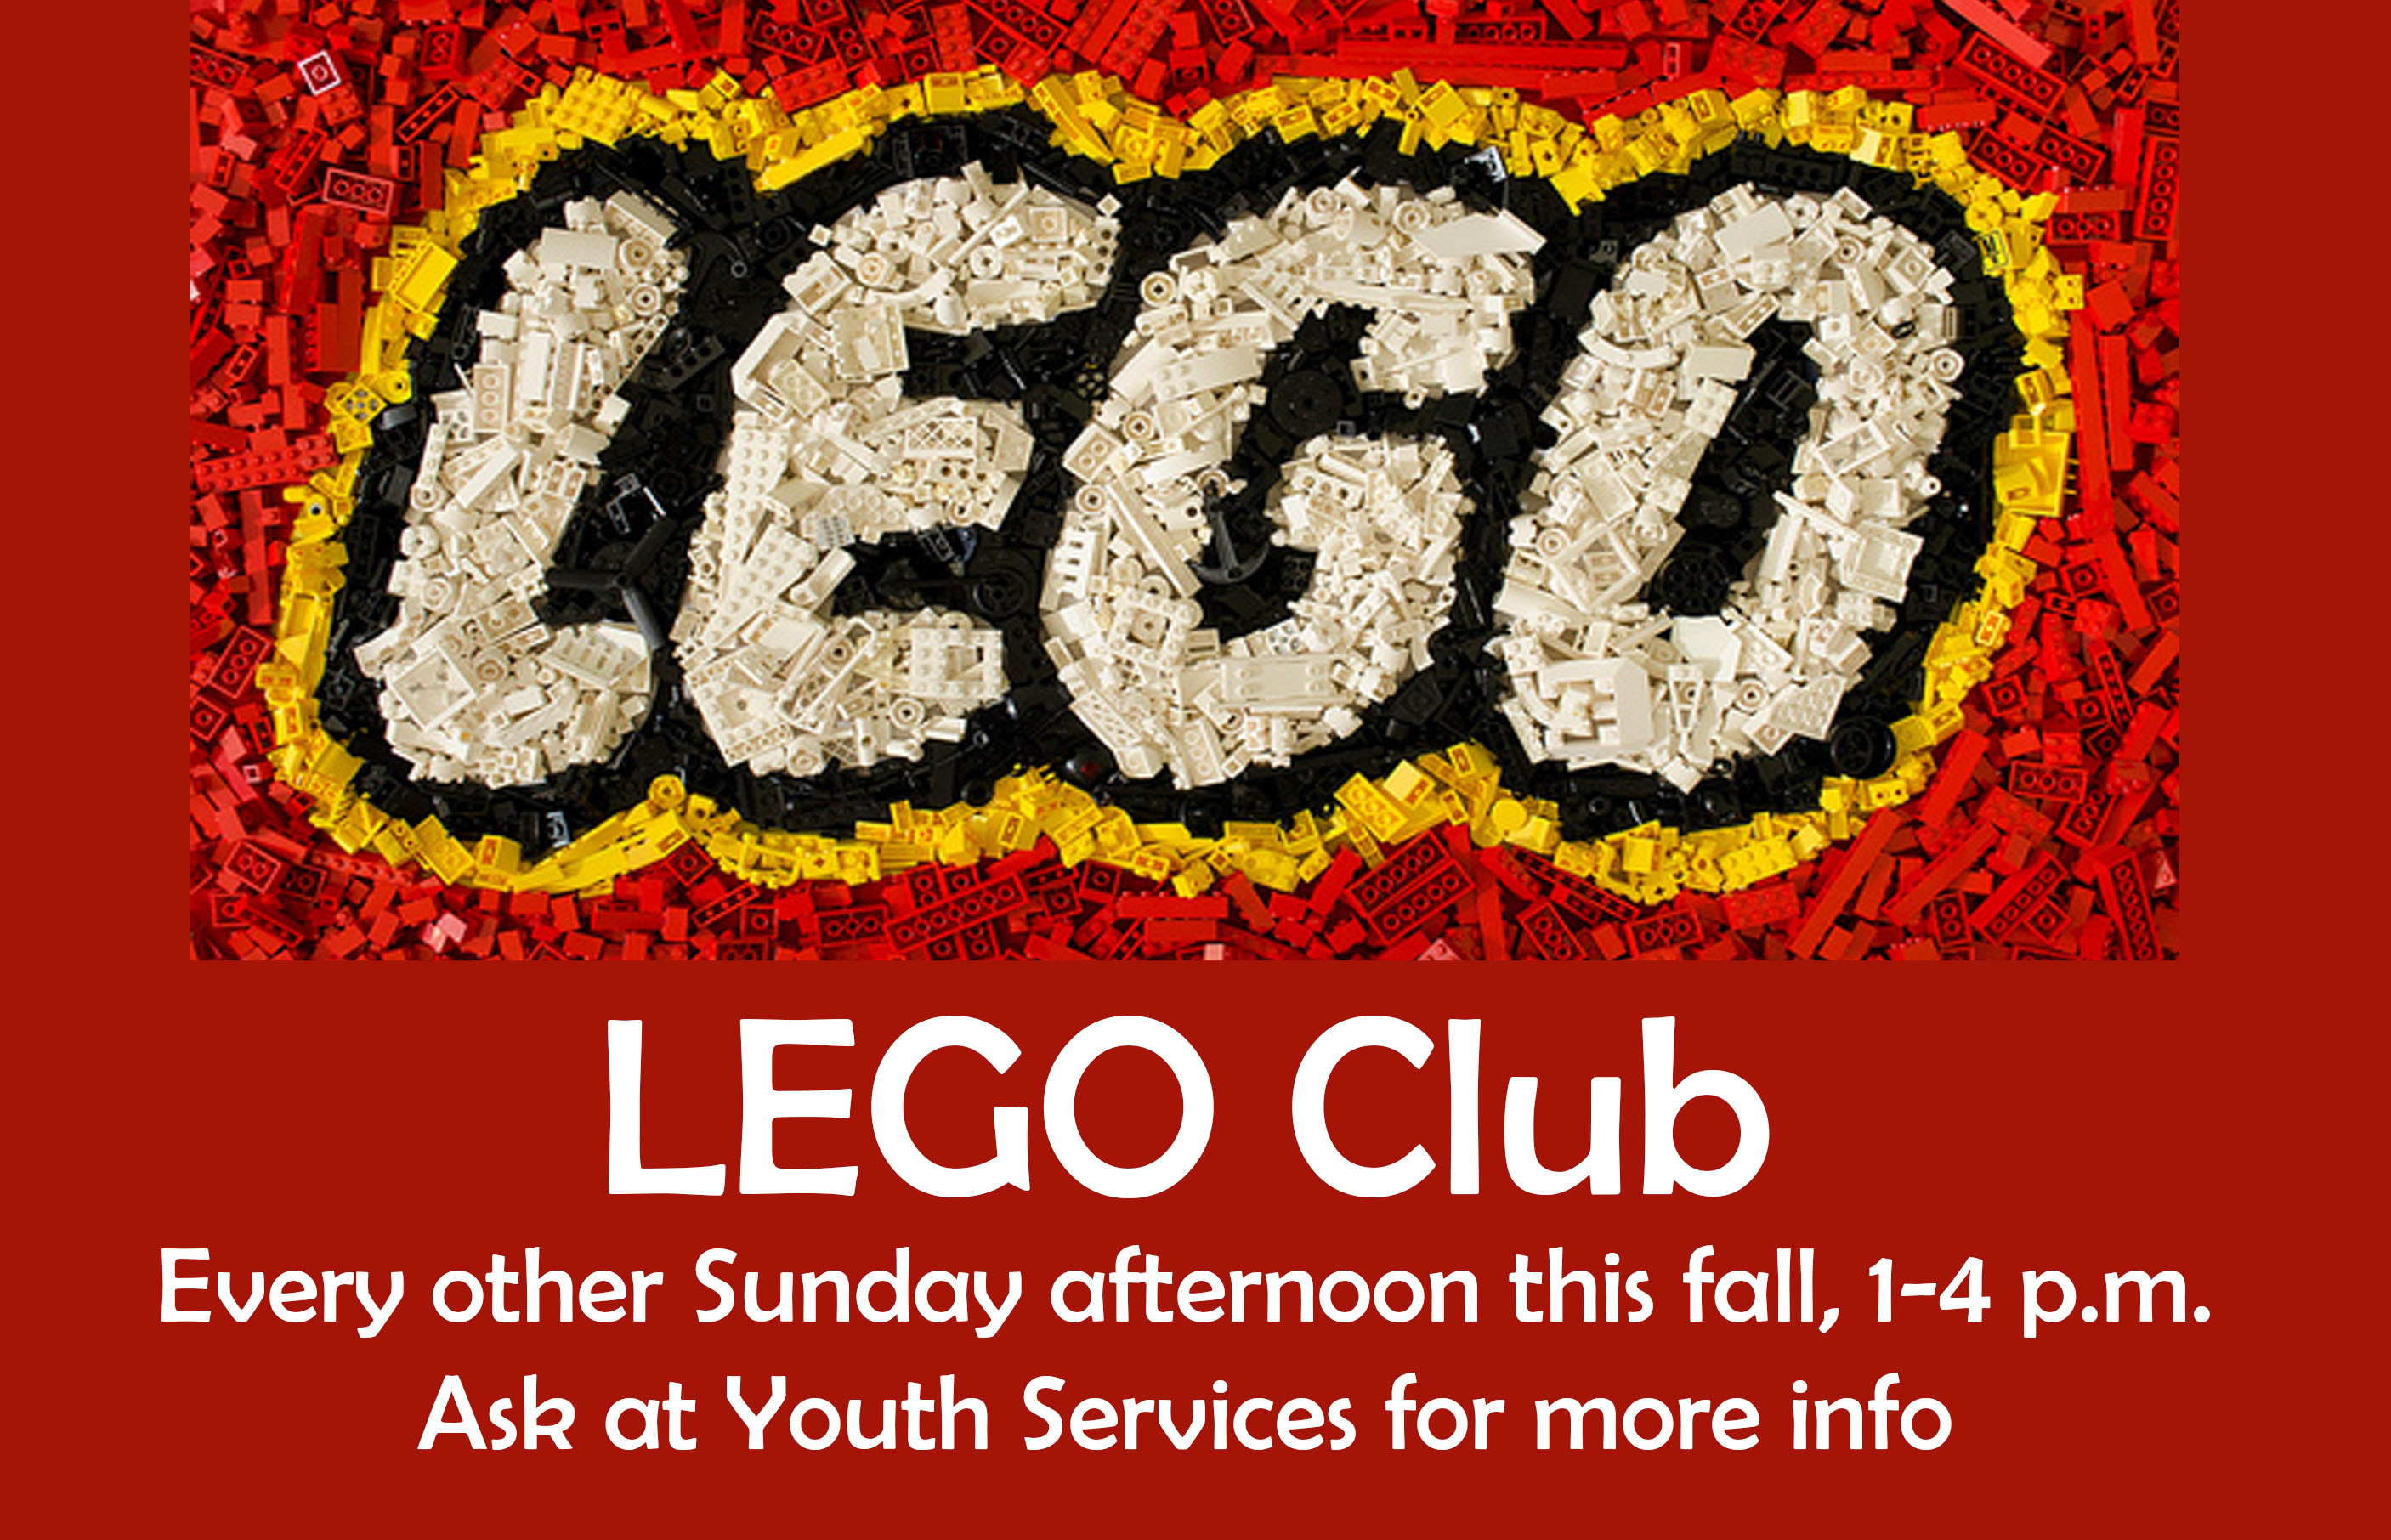 lego club fall 19